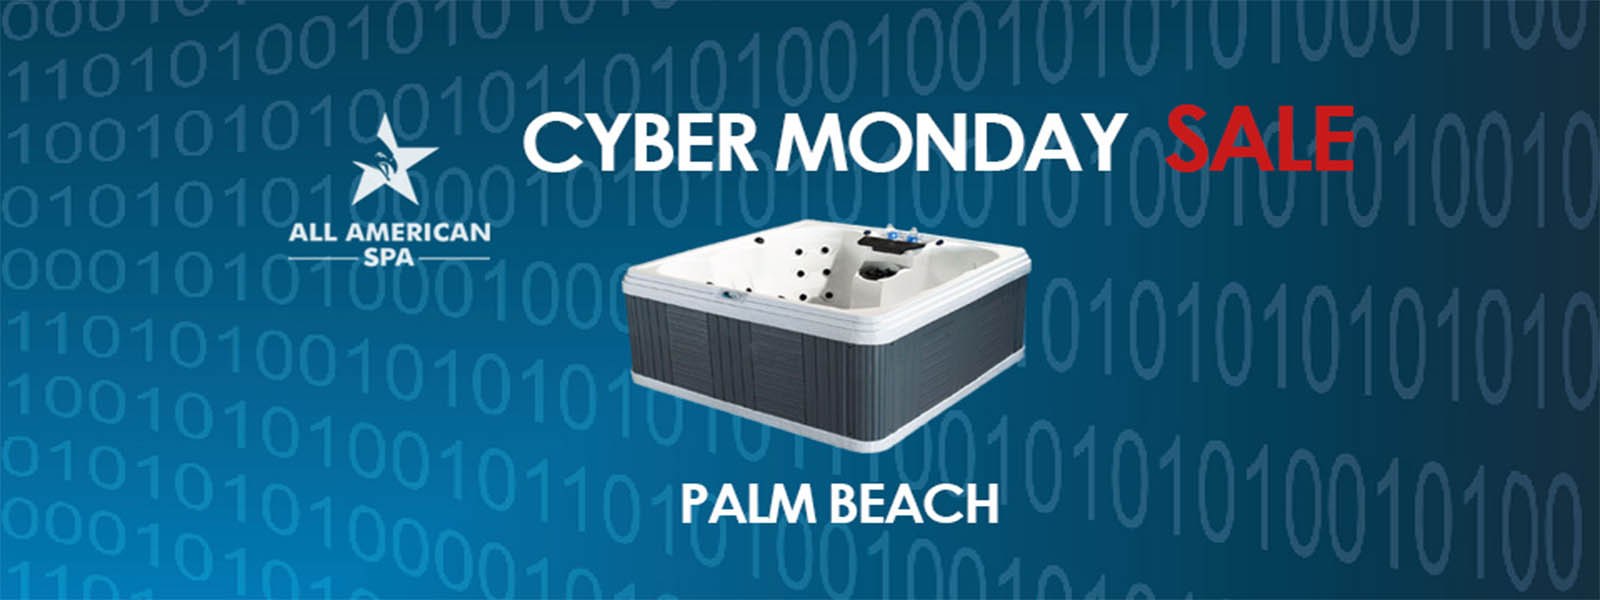 All American Spa | Palm Beach Cyber Monday Hot Tub Deal | All ...